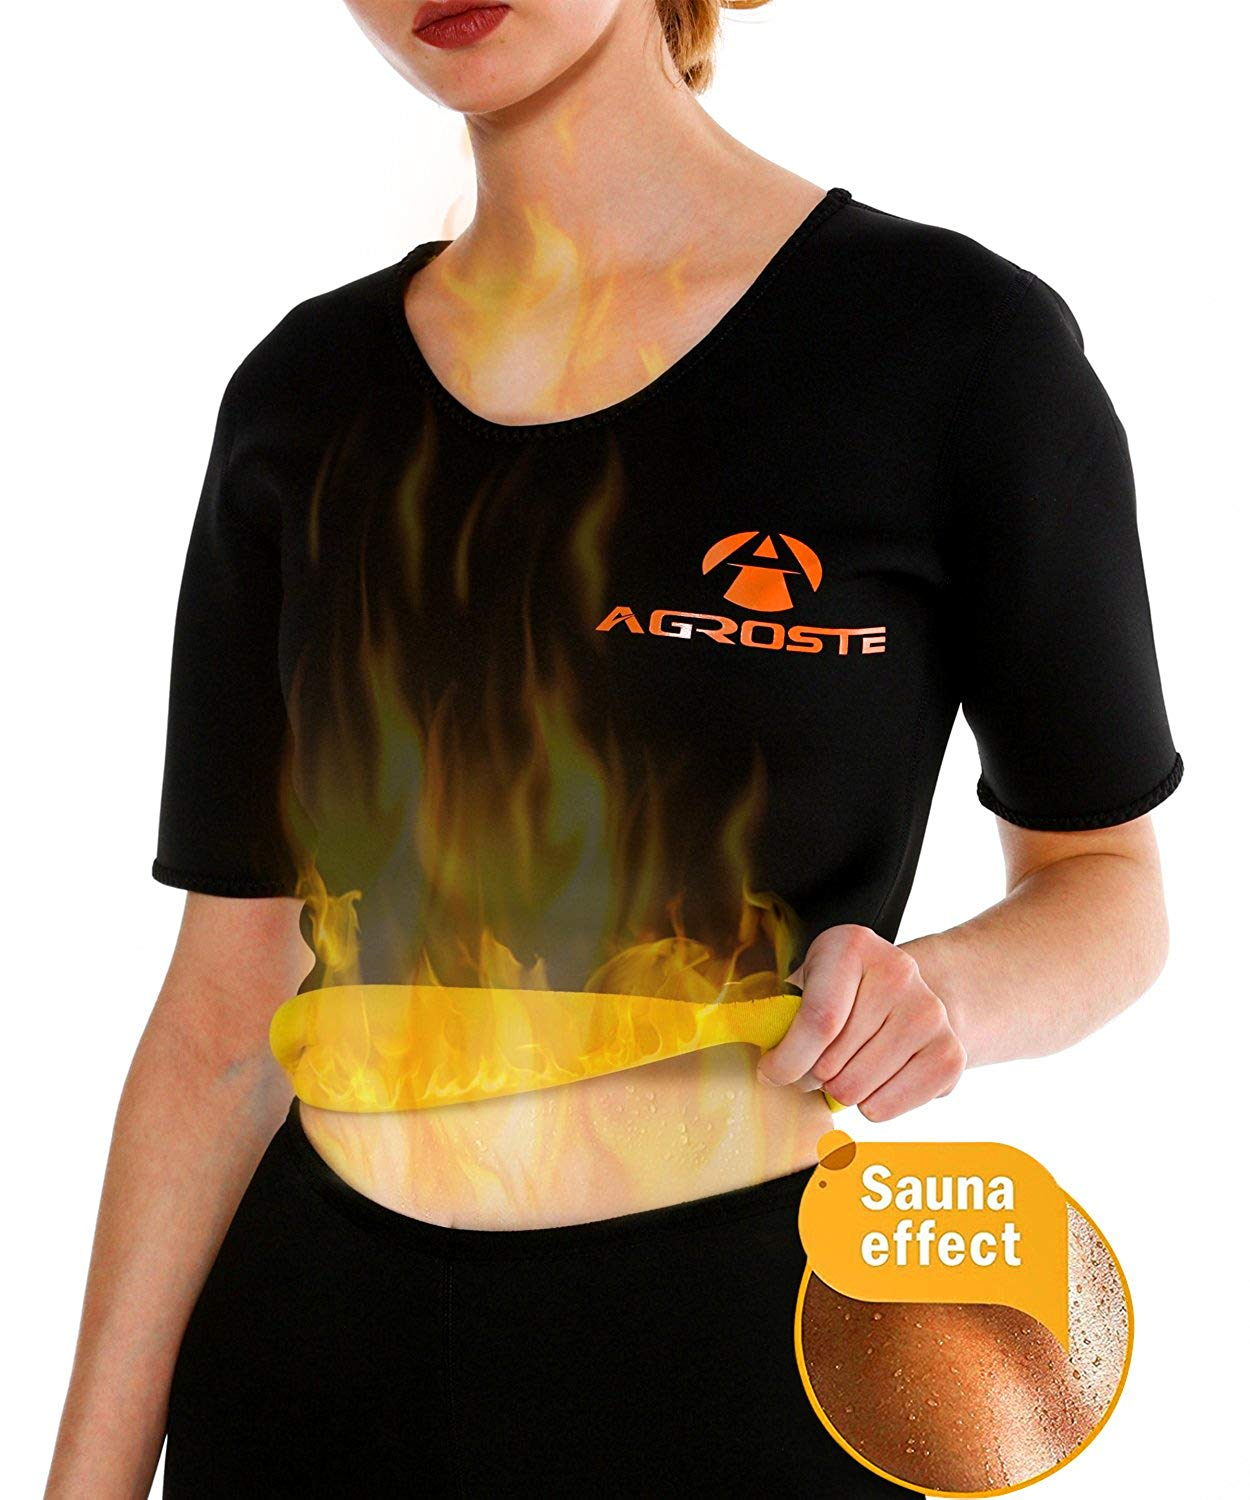 9c95f59f06 AGROSTE Sauna Suit T Shirt Hot Body Neoprene Sweat Weight Loss Shapers  Slimming Shapewear for Women